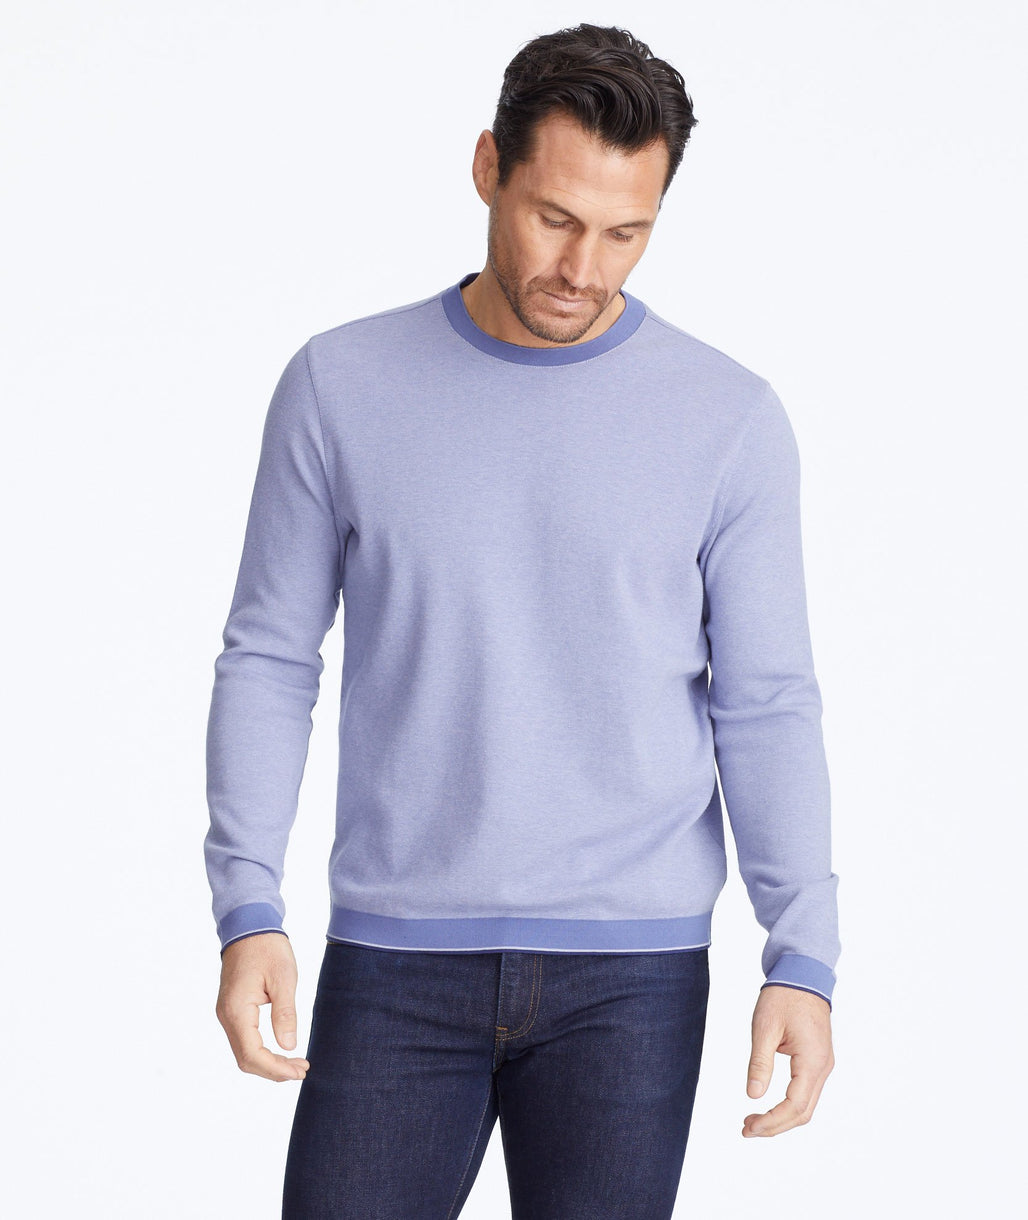 Model wearing a Blue Lightweight Andrews Sweater